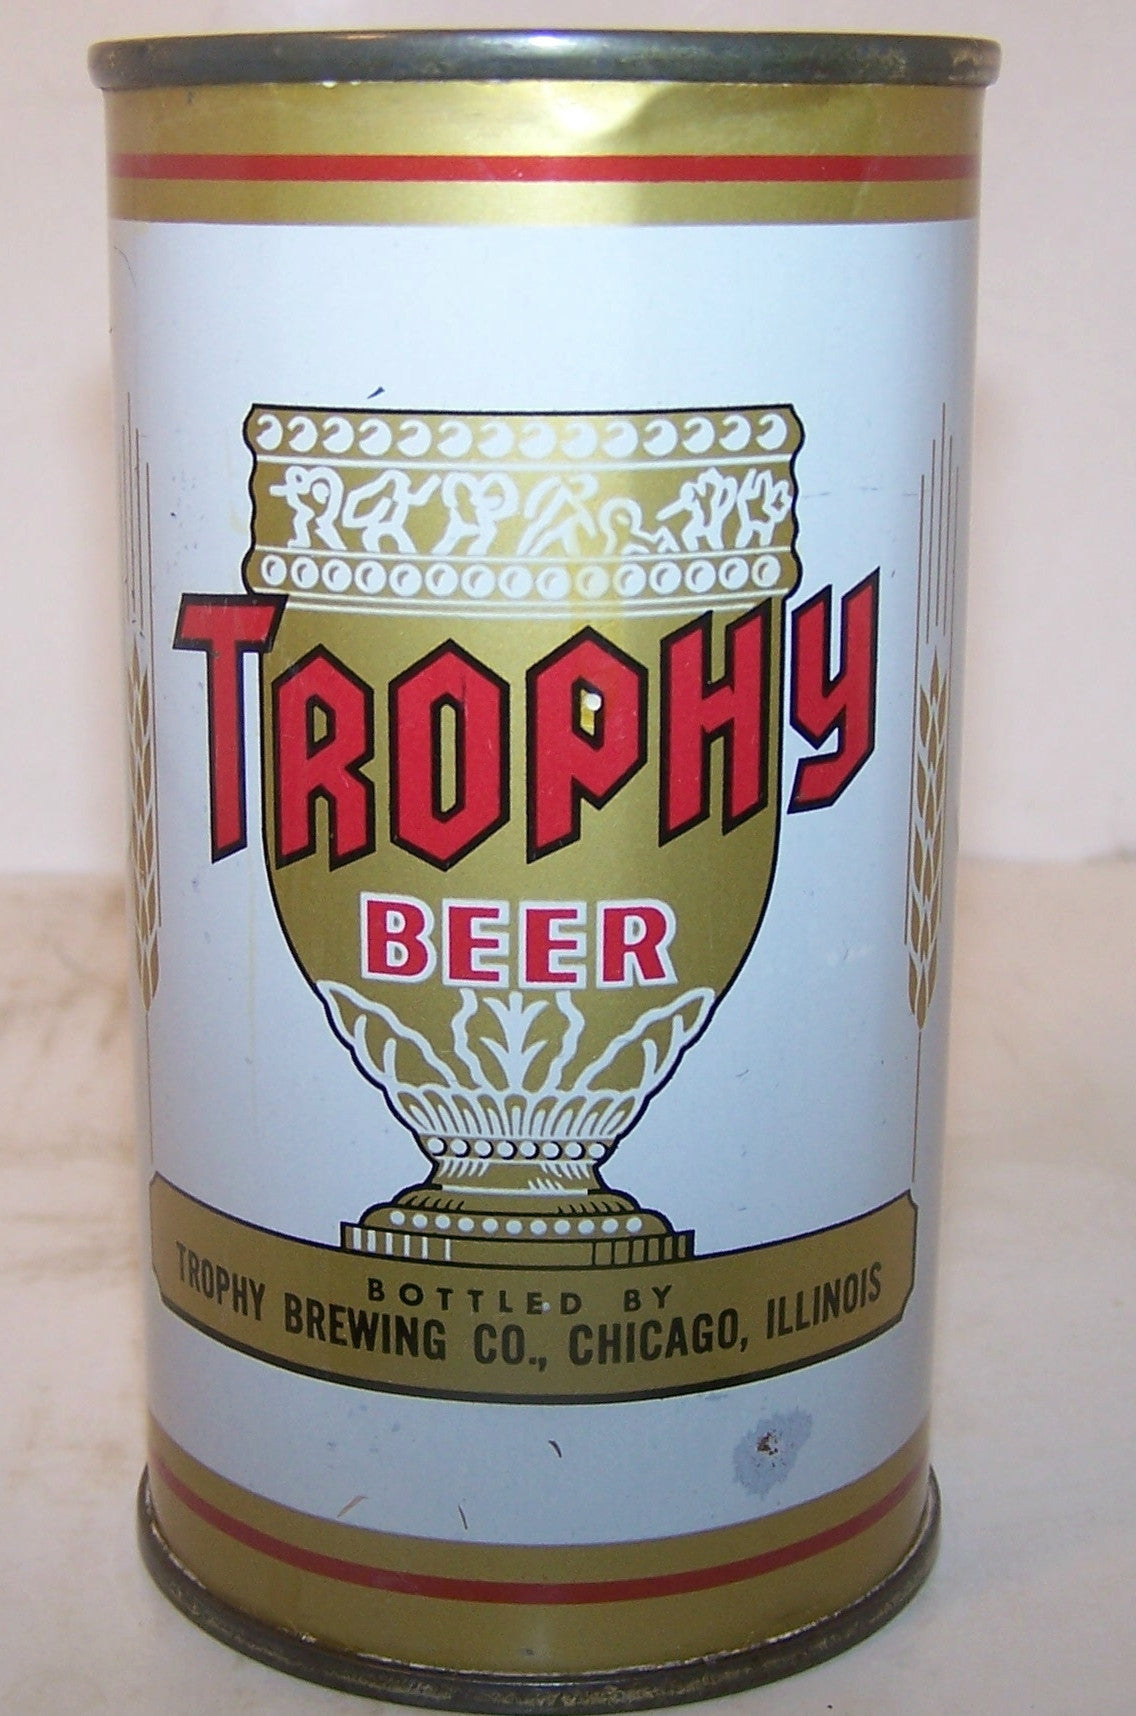 Trophy Beer USBC 139-40, all original, Grade 1